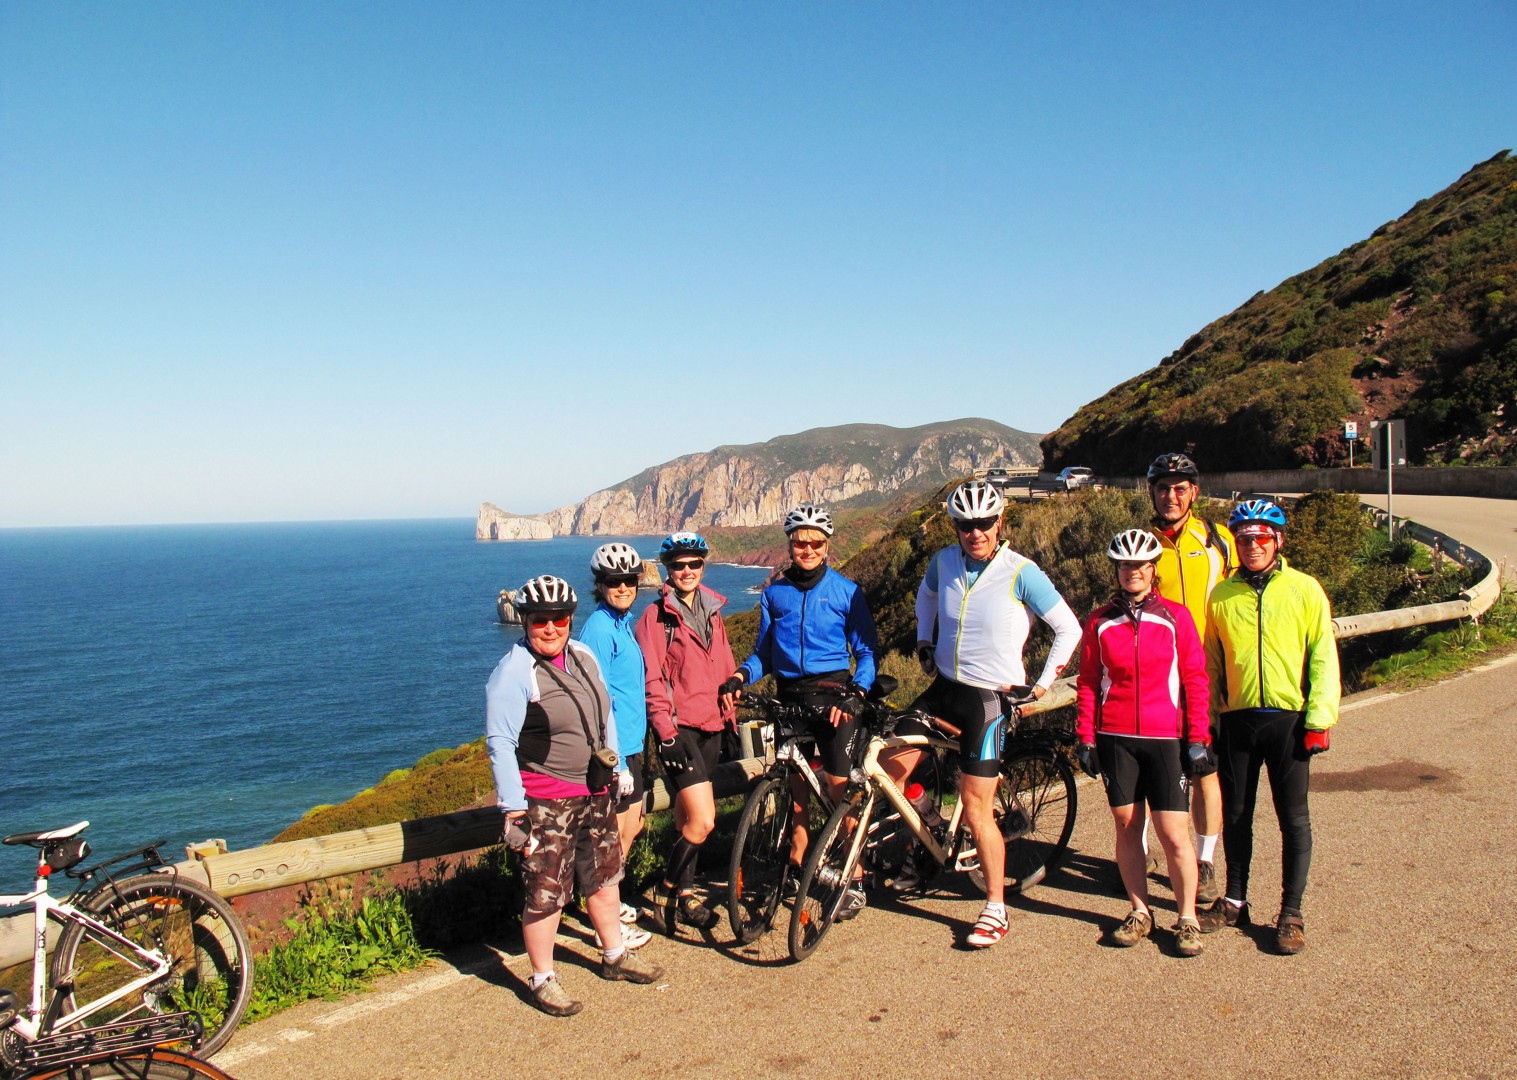 group-guided-cycling-holiday-italy-sardinia.jpg - Italy - Sardinia - Island Flavours - Guided Leisure Cycling Holiday - Leisure Cycling